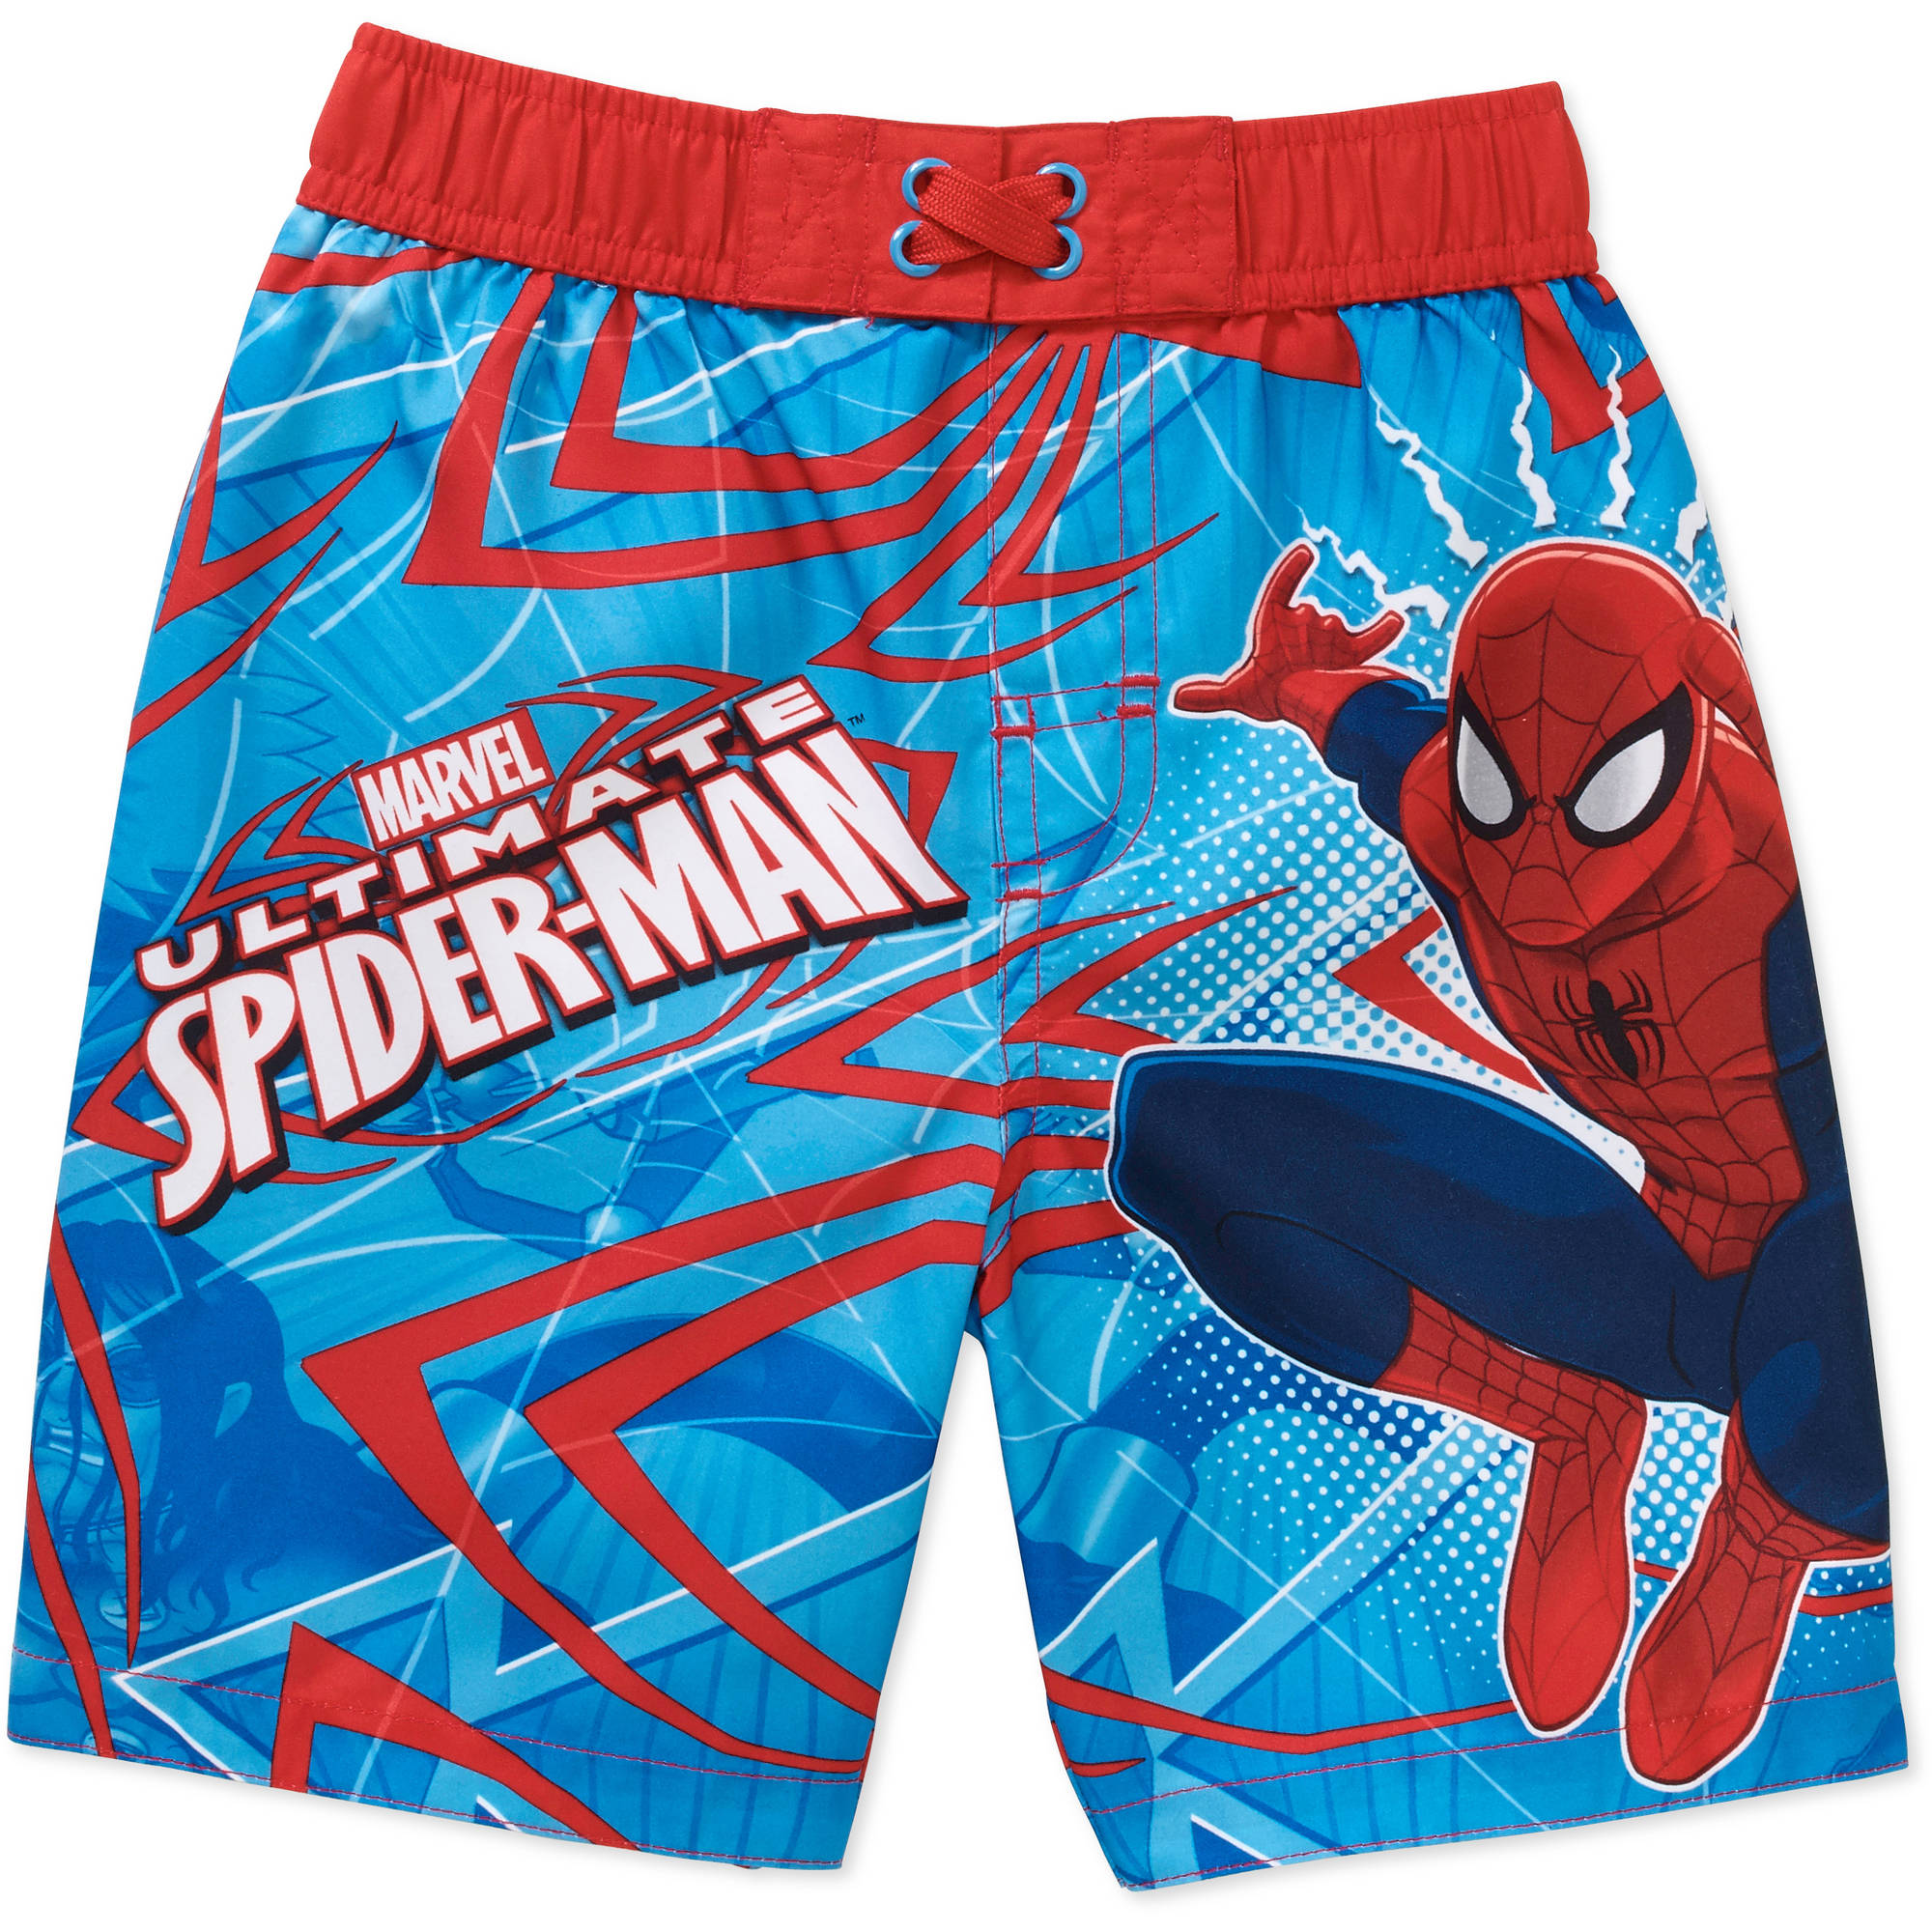 Spiderman Toddler Boy Swim Trunks